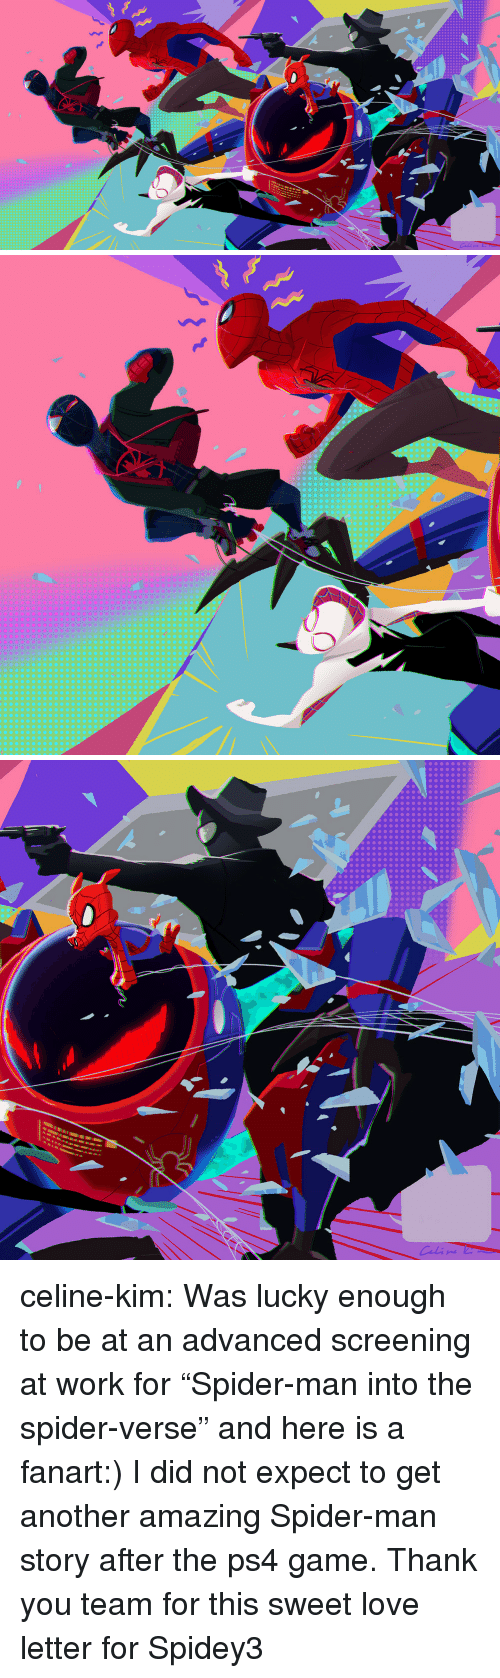 """Love, Ps4, and Spider: celine-kim:  Was lucky enough to be at an advanced screening at work for """"Spider-man into the spider-verse"""" and here is a fanart:) I did not expect to get another amazing Spider-man story after the ps4 game. Thank you team for this sweet love letter for Spidey3"""